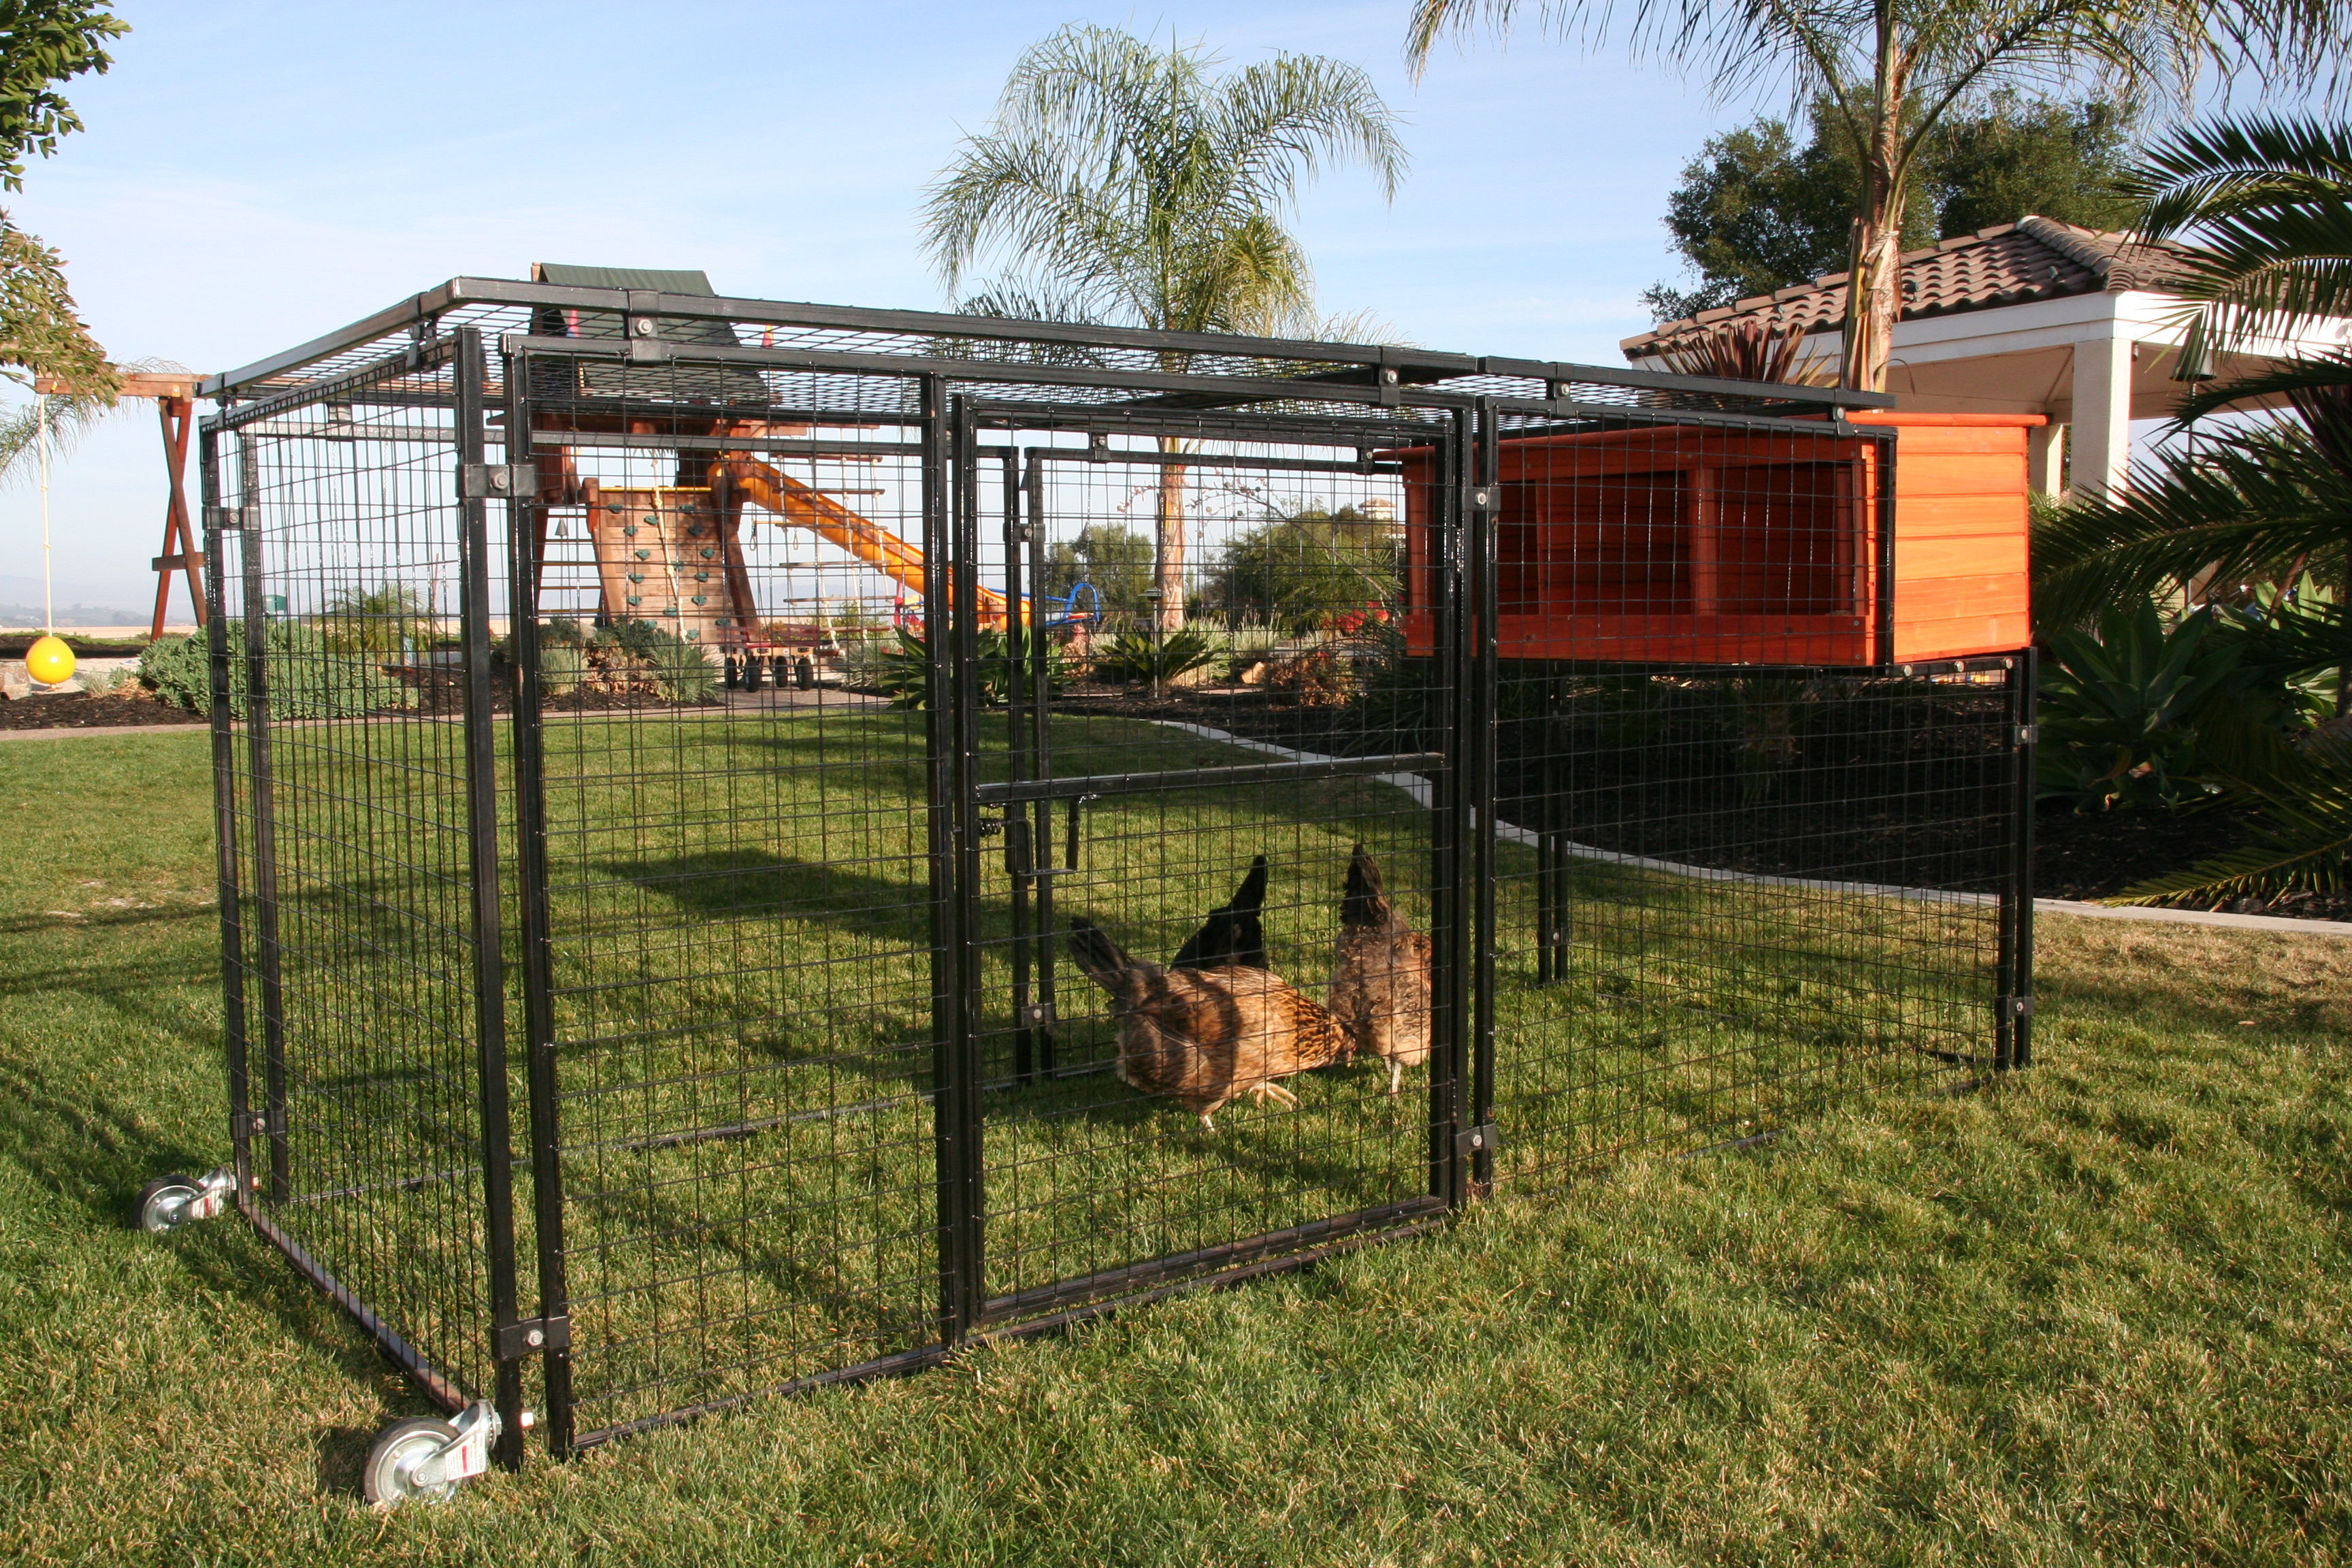 Spring fling mobile chicken yard from my pet chicken for Portable chicken yard